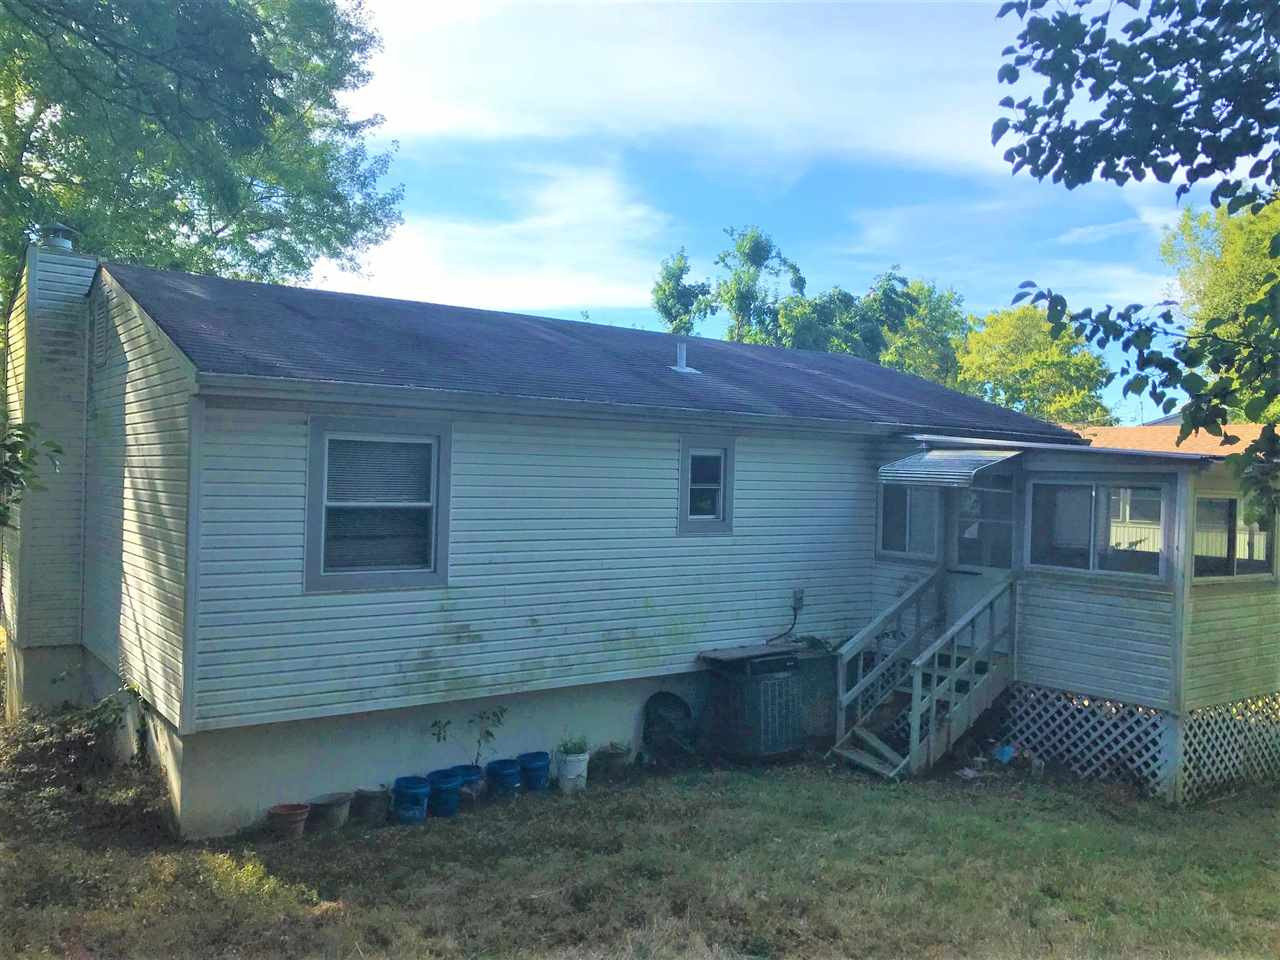 Photo 3 for 9 Old Stephenson Mill Rd. Walton, KY 41094